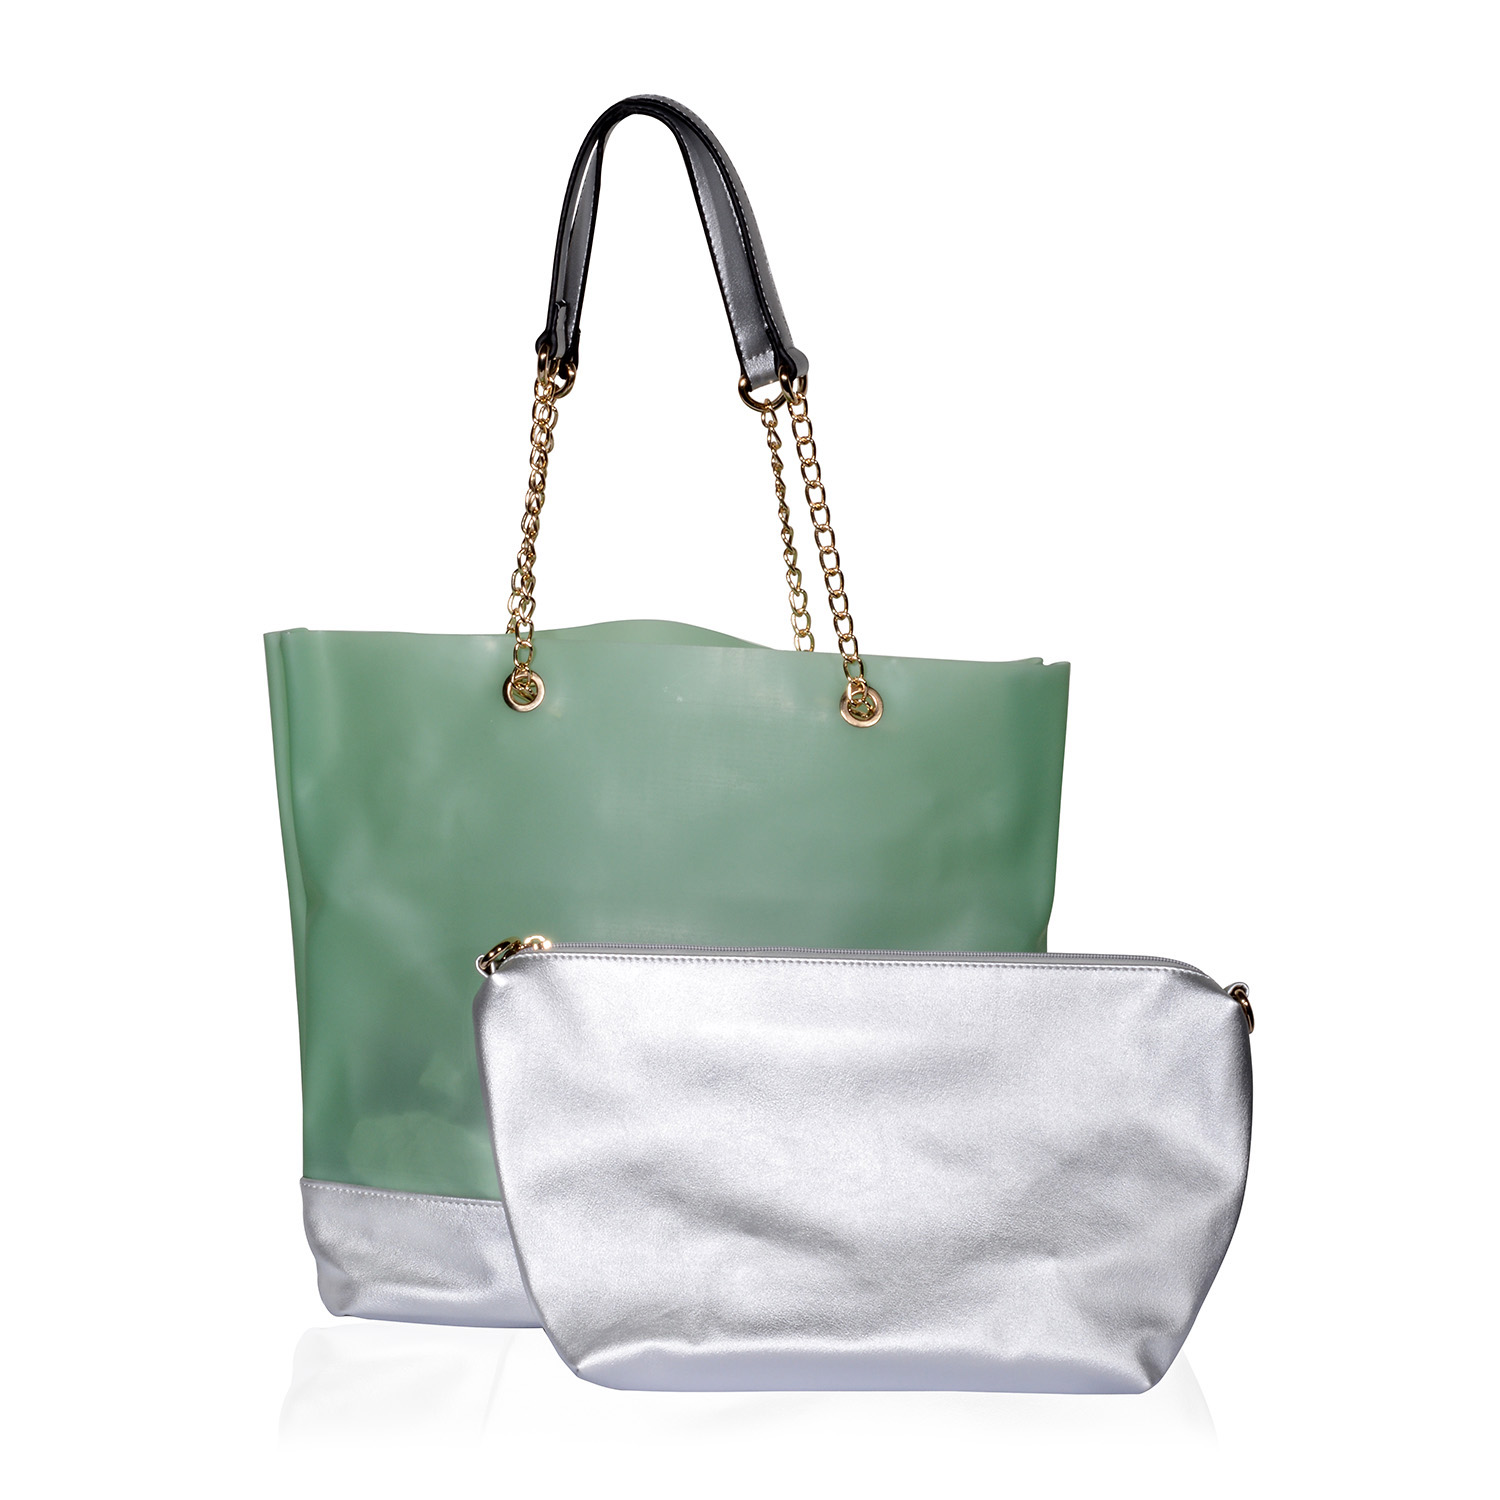 1dd1b16c95 Lime Green and Silver Two-Tone Vegan Leather Tote on Chain Link Straps  (13x5x14 in) with Matching Peach Vegan Leather Clutch Barrel Bag (13.5x5x8  in) ...